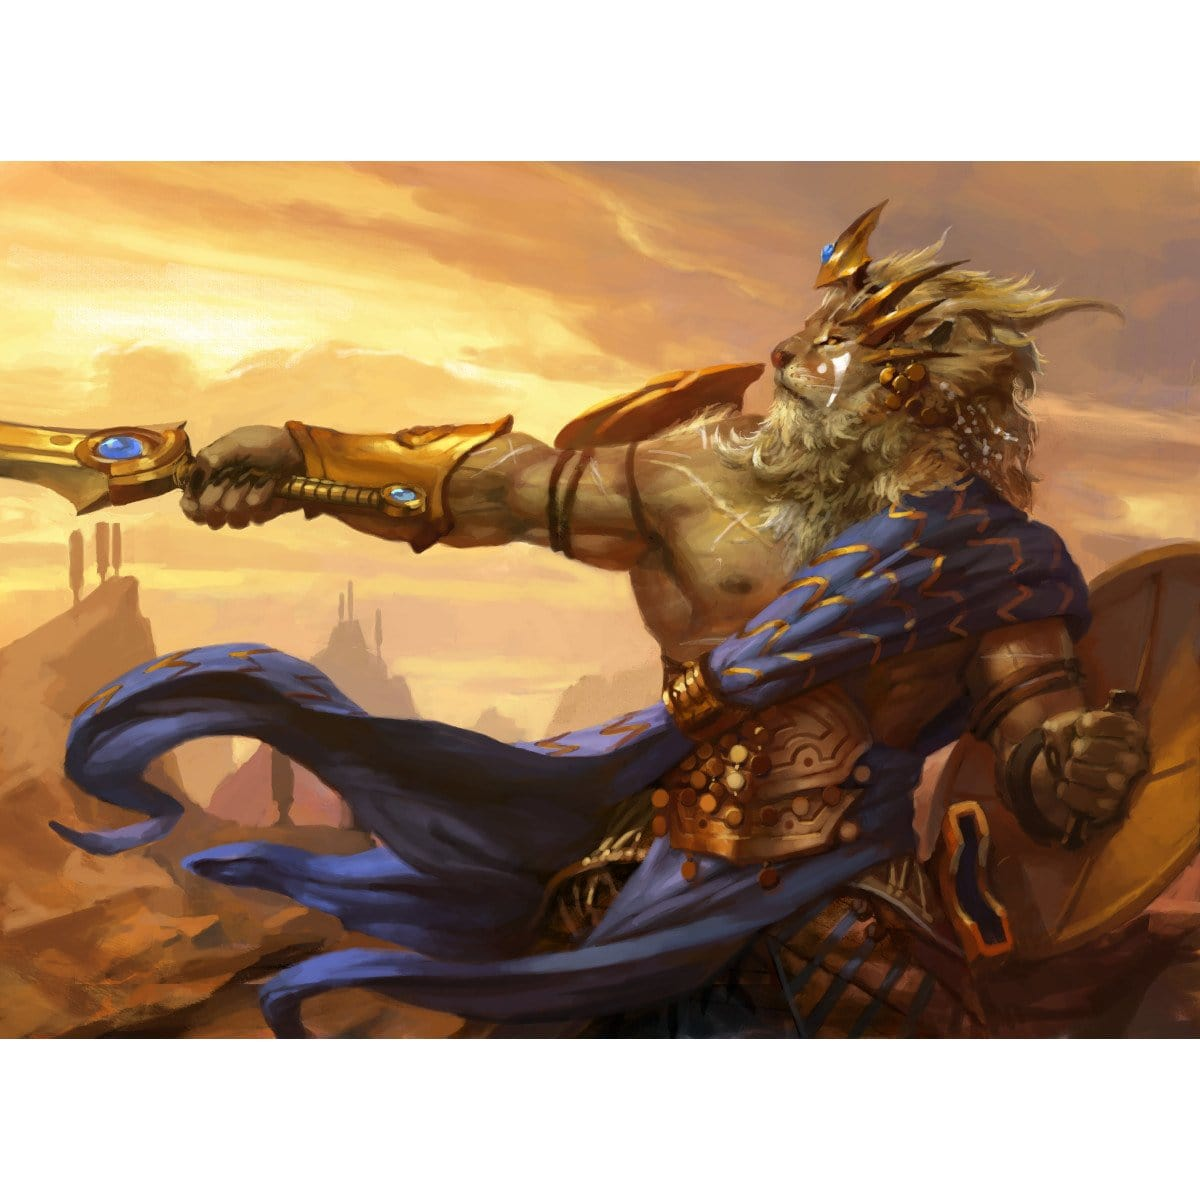 Brimaz, King of Oreskos Print - Print - Original Magic Art - Accessories for Magic the Gathering and other card games